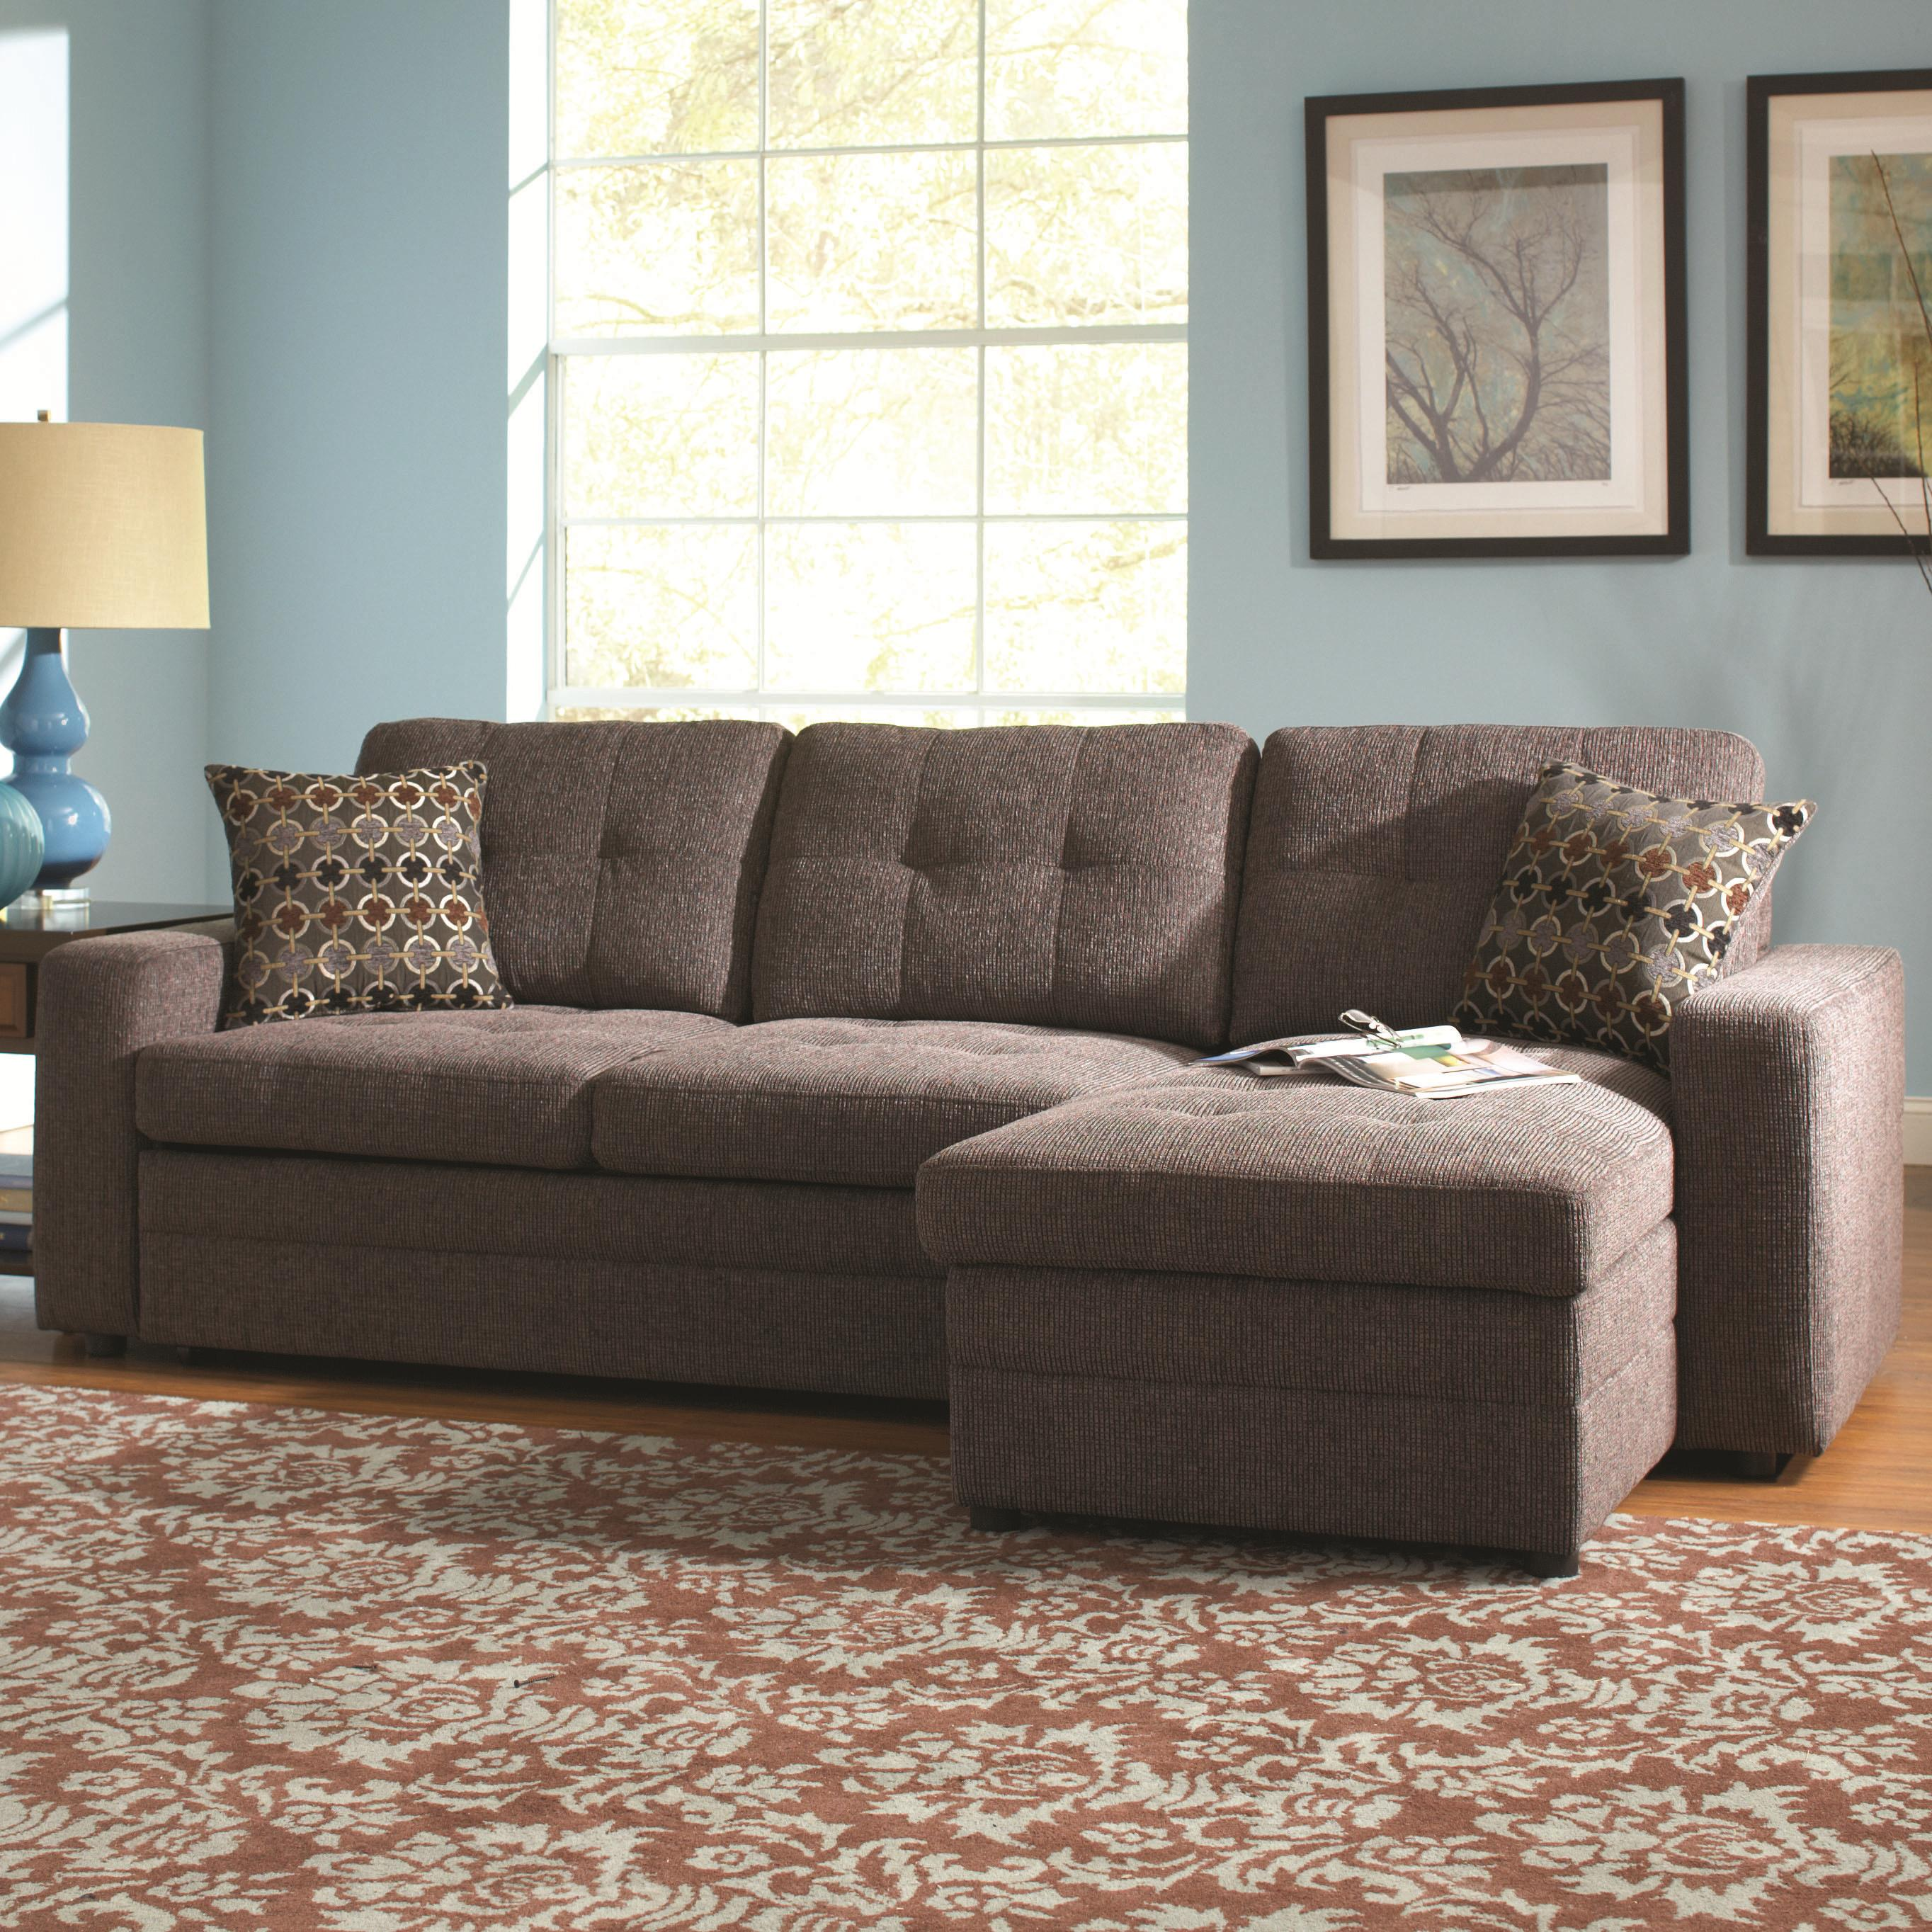 sectional sofa dallas fort worth west elm cover coaster gus 501677 with tufts storage and pull out bed by